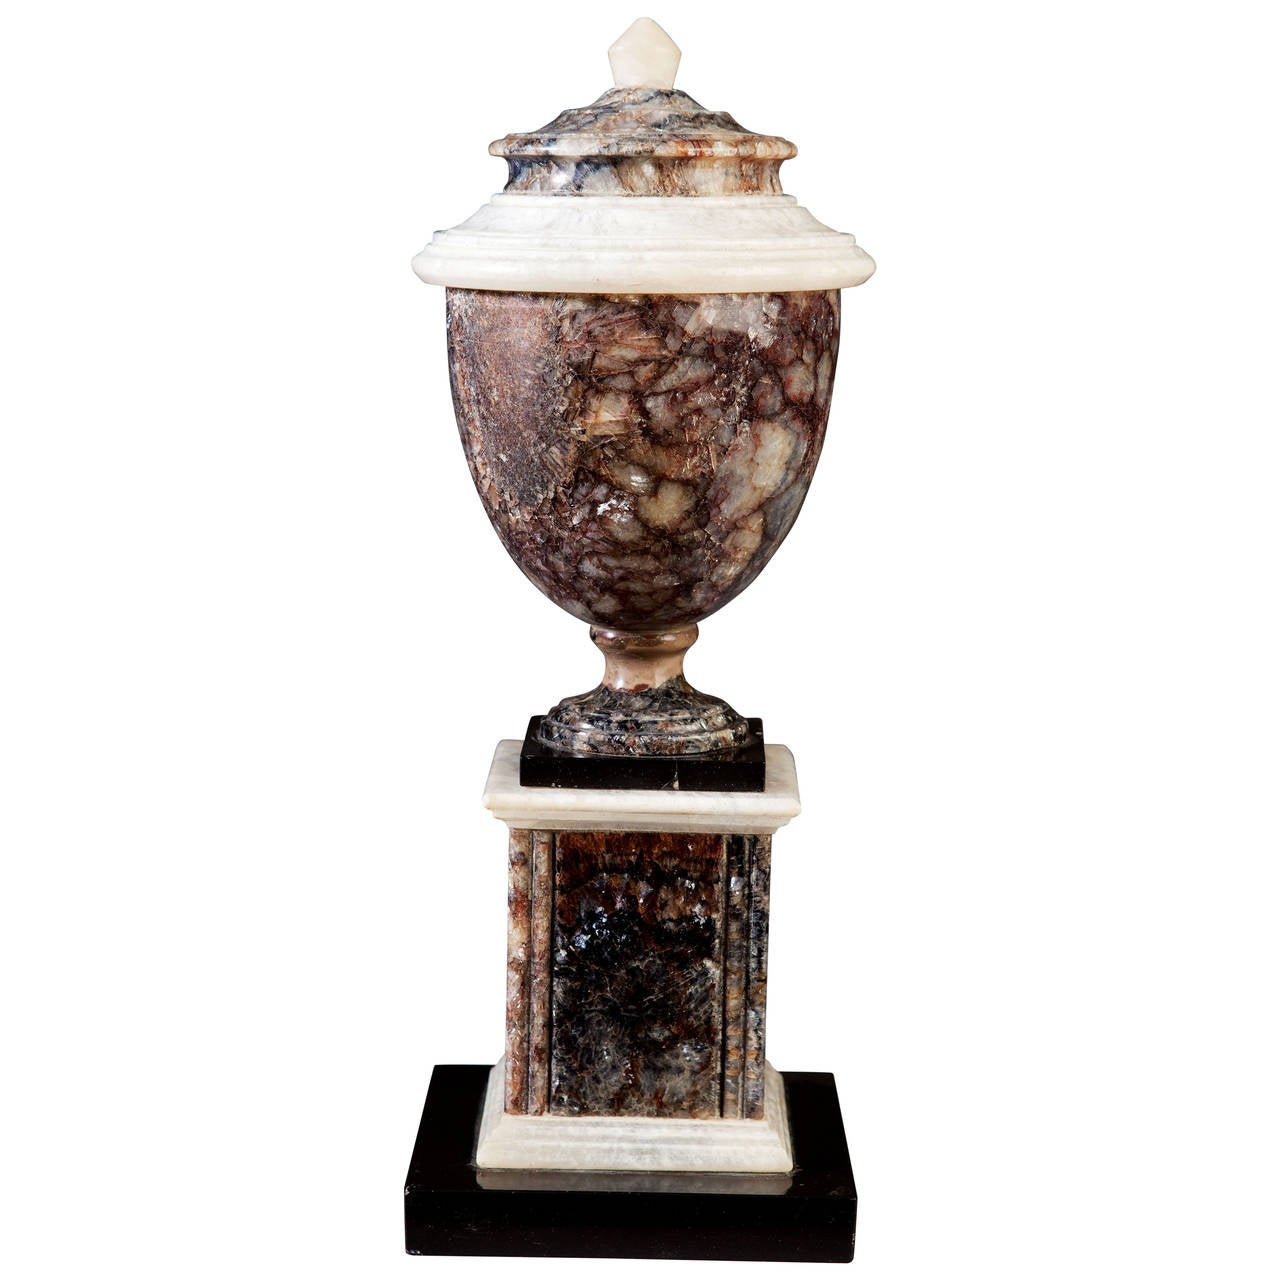 George iii large scale dark blue john urn for sale at 1stdibs - Large decorative vases and urns ...